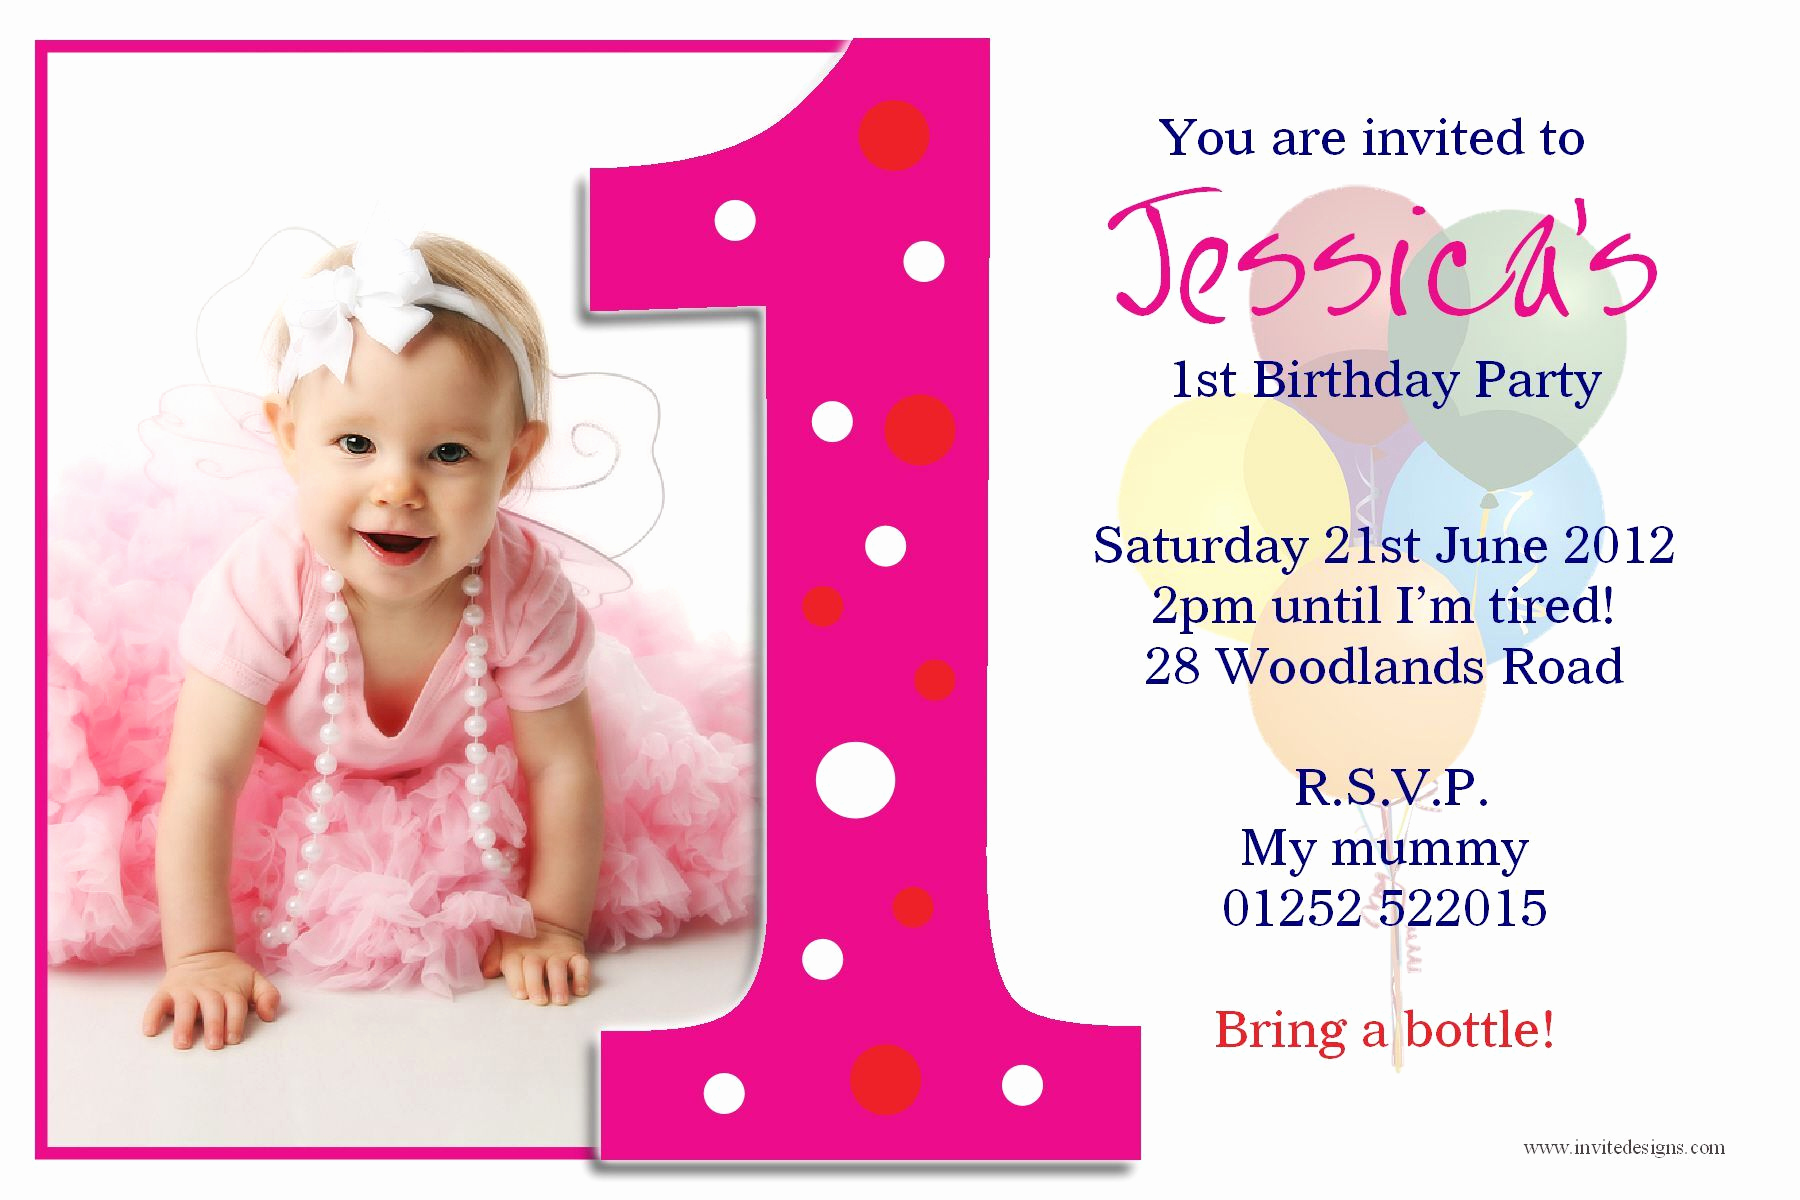 Invitation Card for Birthday New Birthday Party First Birthday Invitations Card